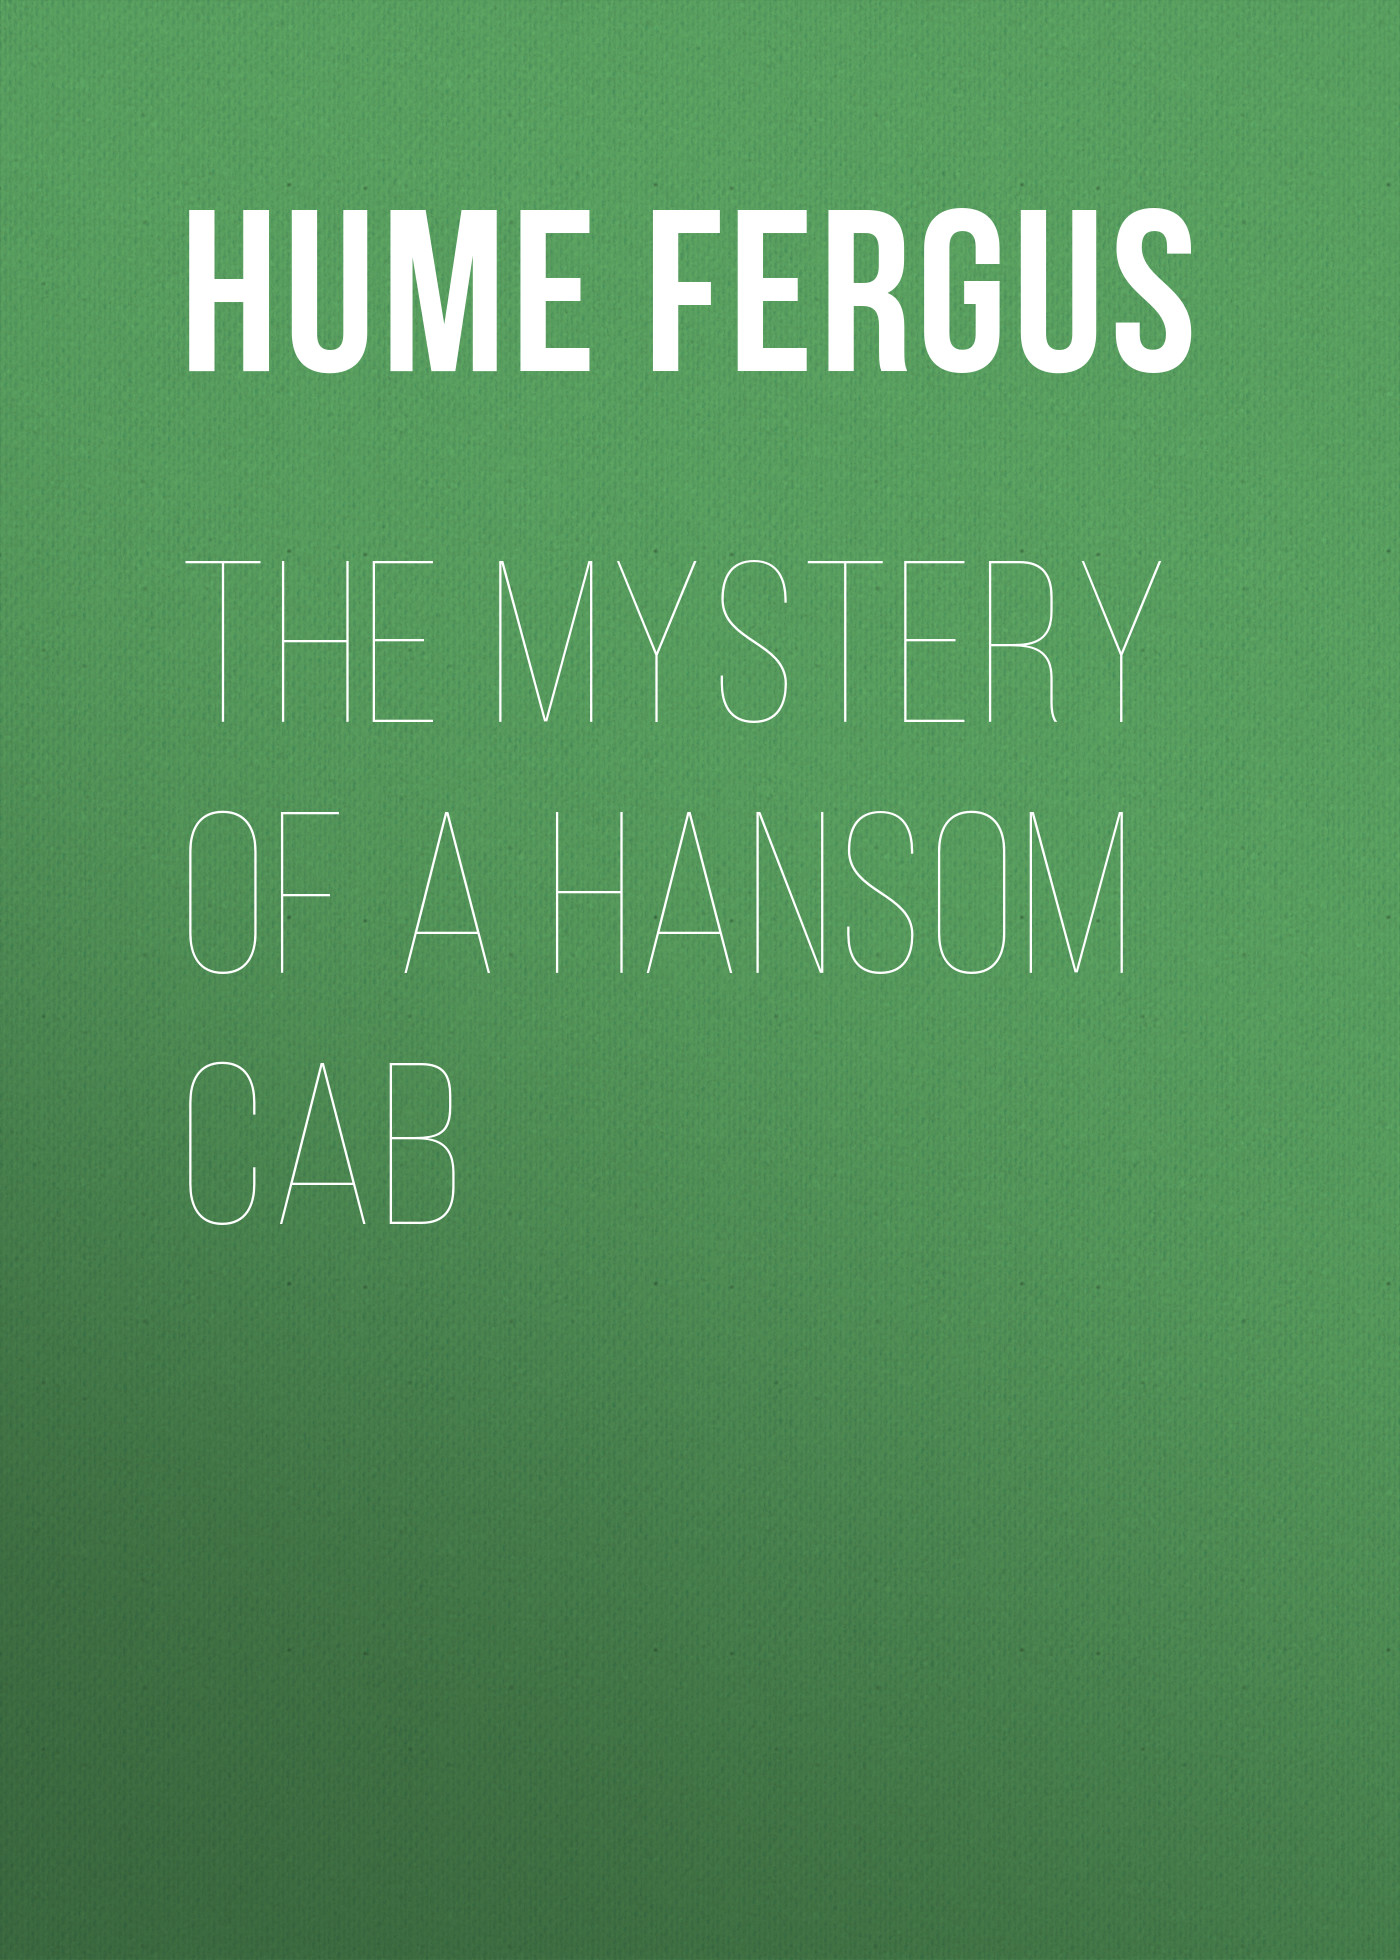 Hume Fergus The Mystery of a Hansom Cab poe e a the mystery of marie roget